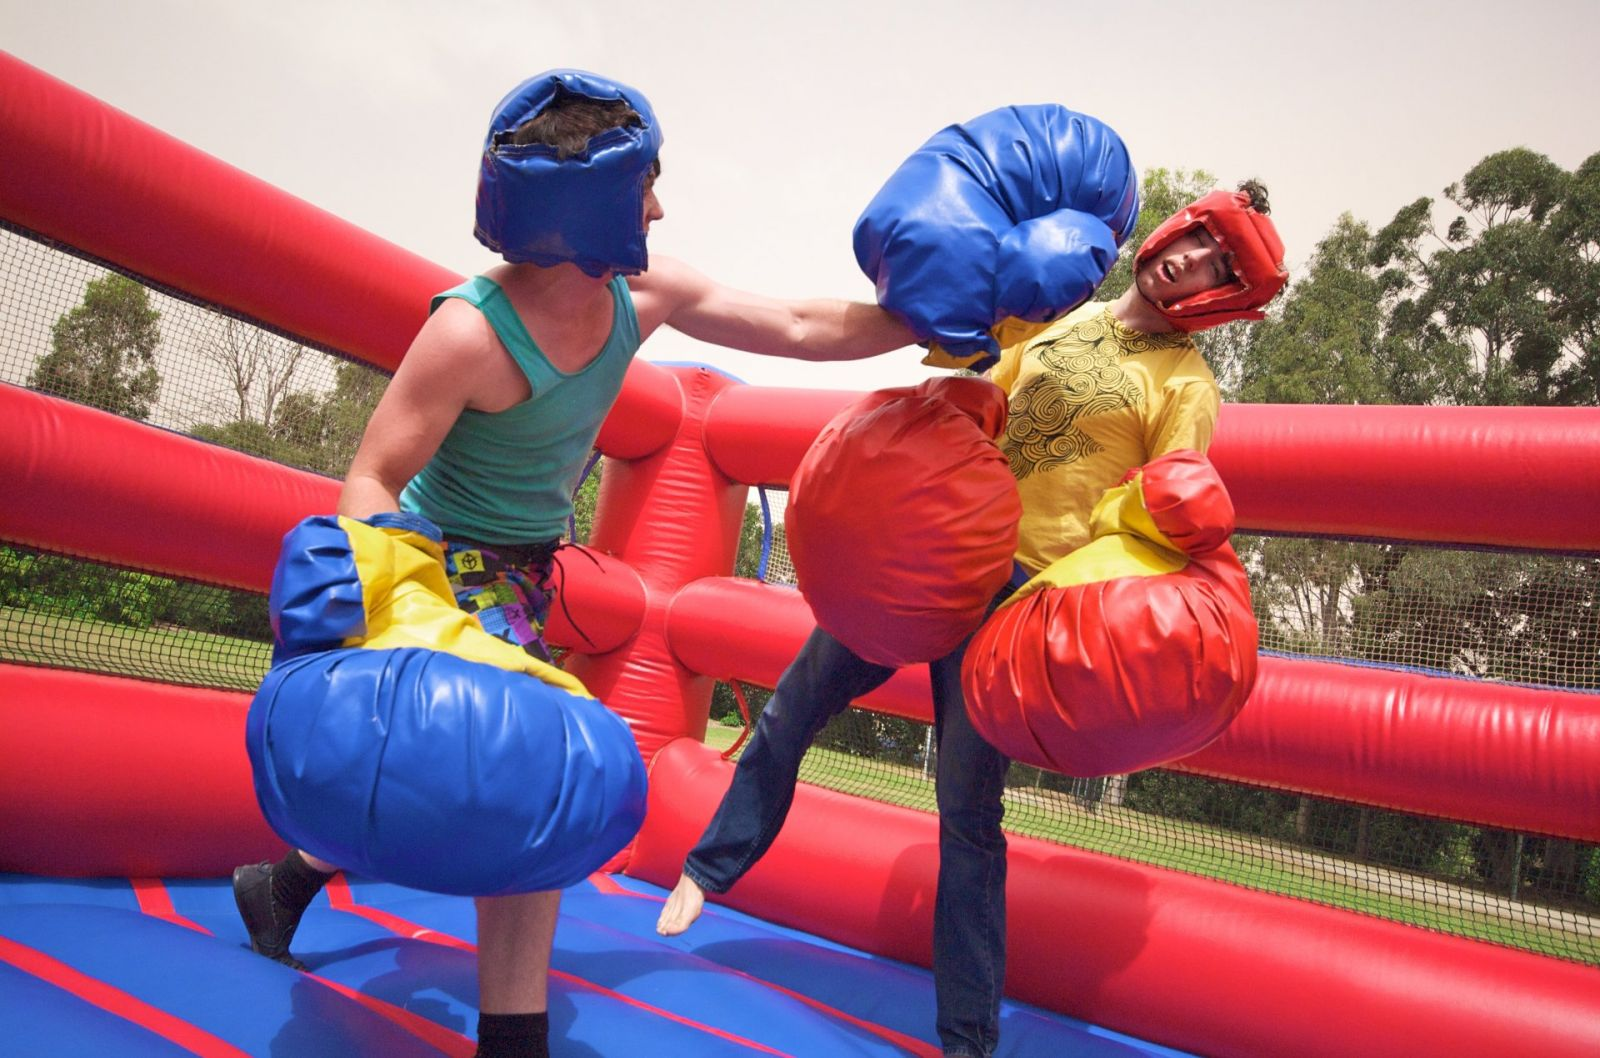 Bouncy Boxing Inflatable rental for parties in Austin Texas from Austin Bounce House Rentals